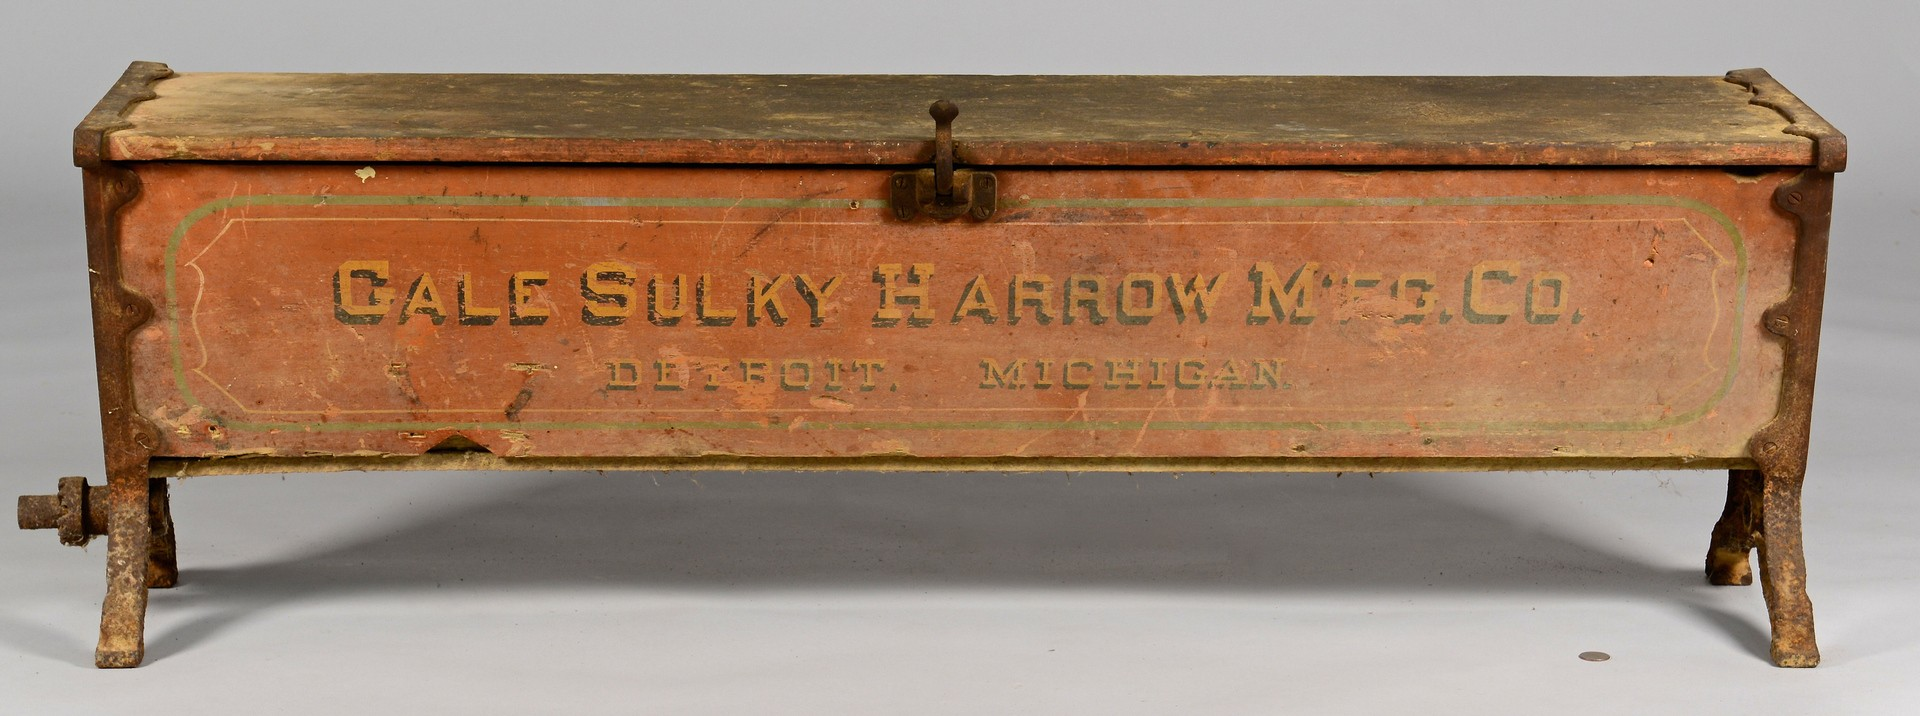 Lot 864: Hoosier Seed Drill Painted Advertising Bench